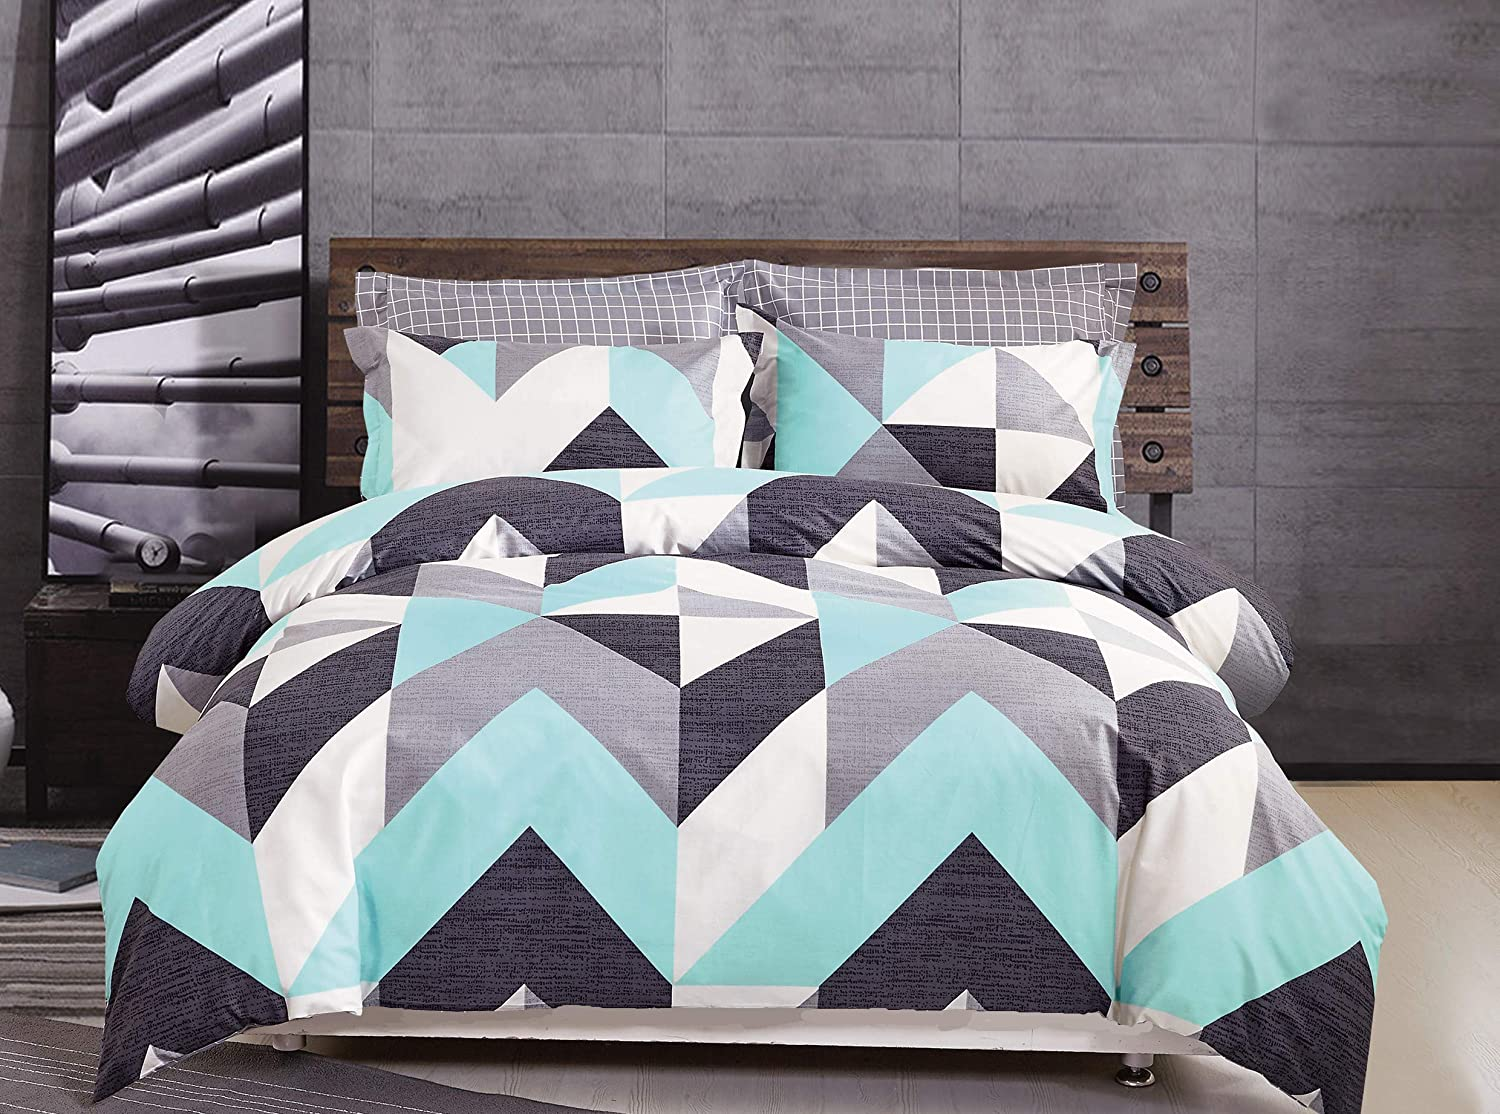 FADFAY Geometric Duvet Cover Set Full Colorful Blue-Green Gray White Black Duvet Cover Set 100% Cotton Super Soft Hypoallergenic with Hidden Zipper Closure 3 Pieces Full Size